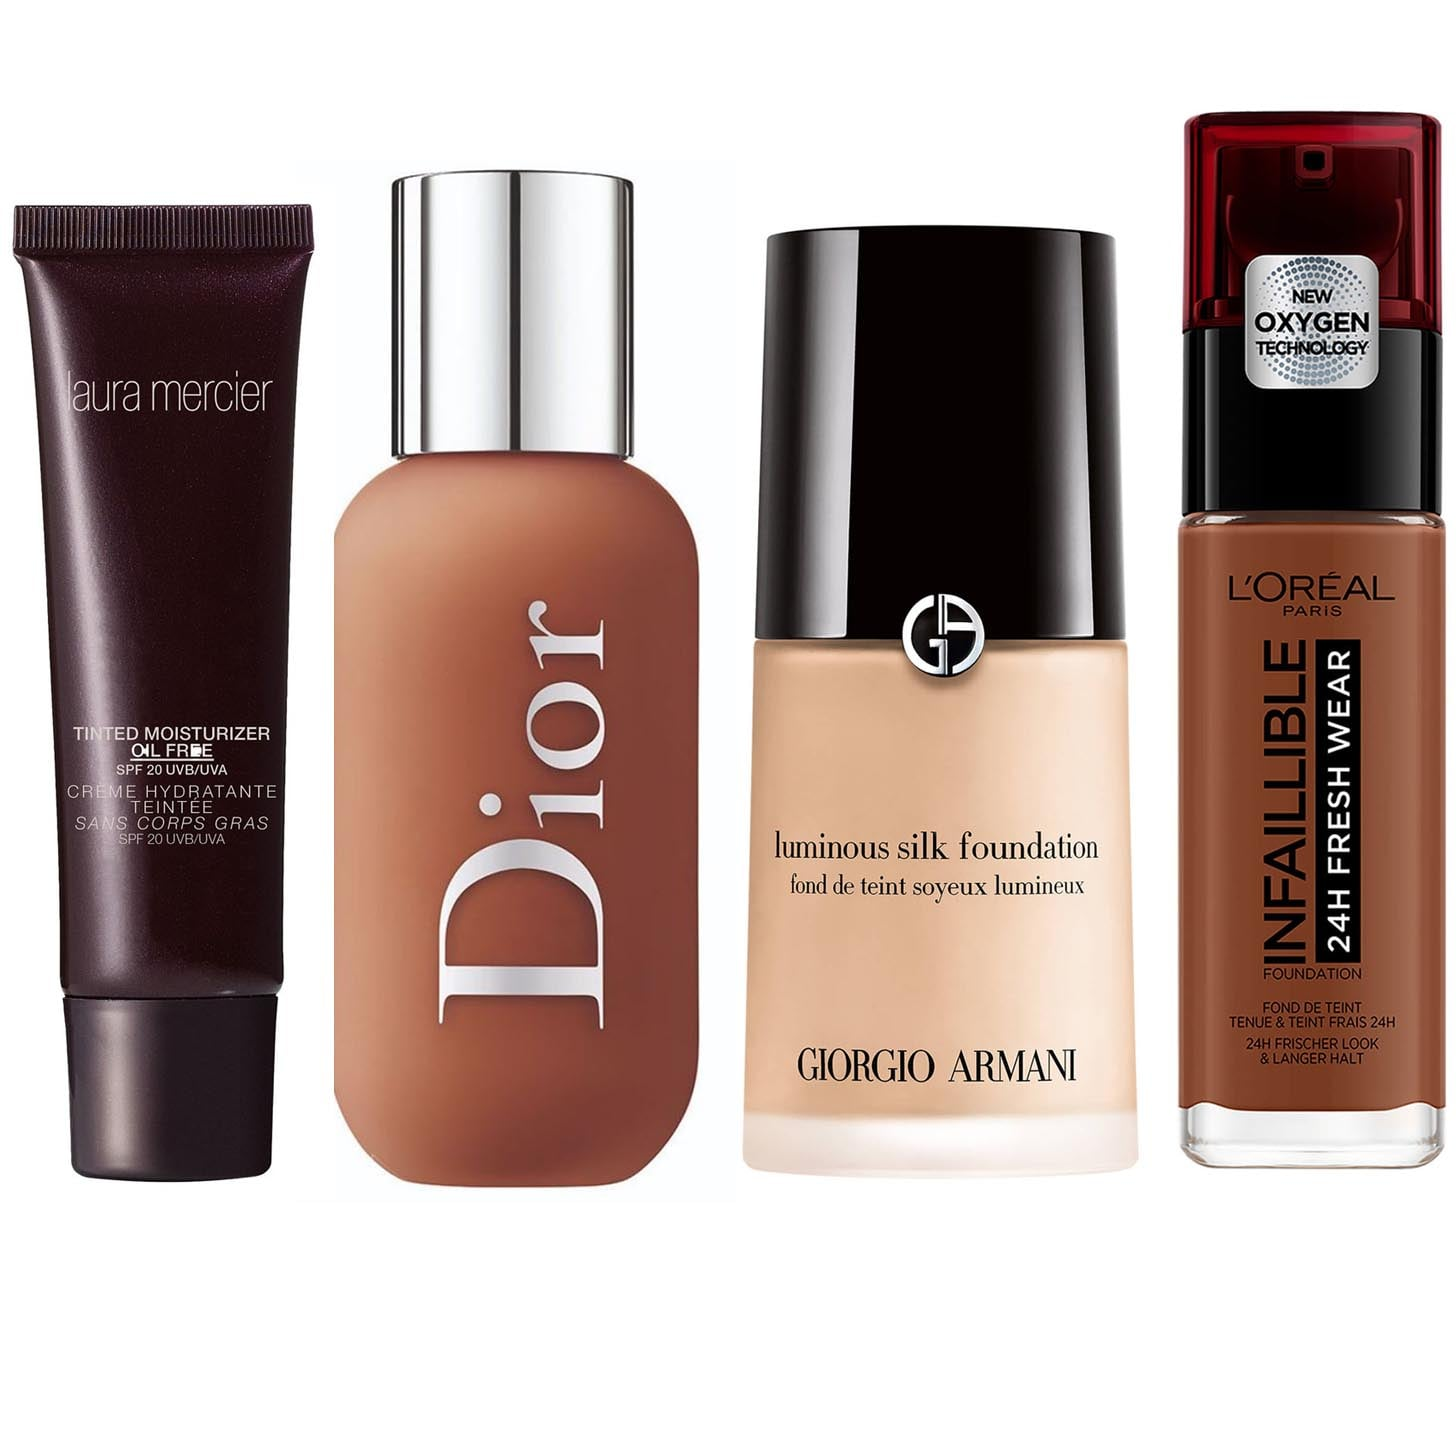 Best Foundations For Oily Skin According To Makeup Artists Popsugar Beauty Uk